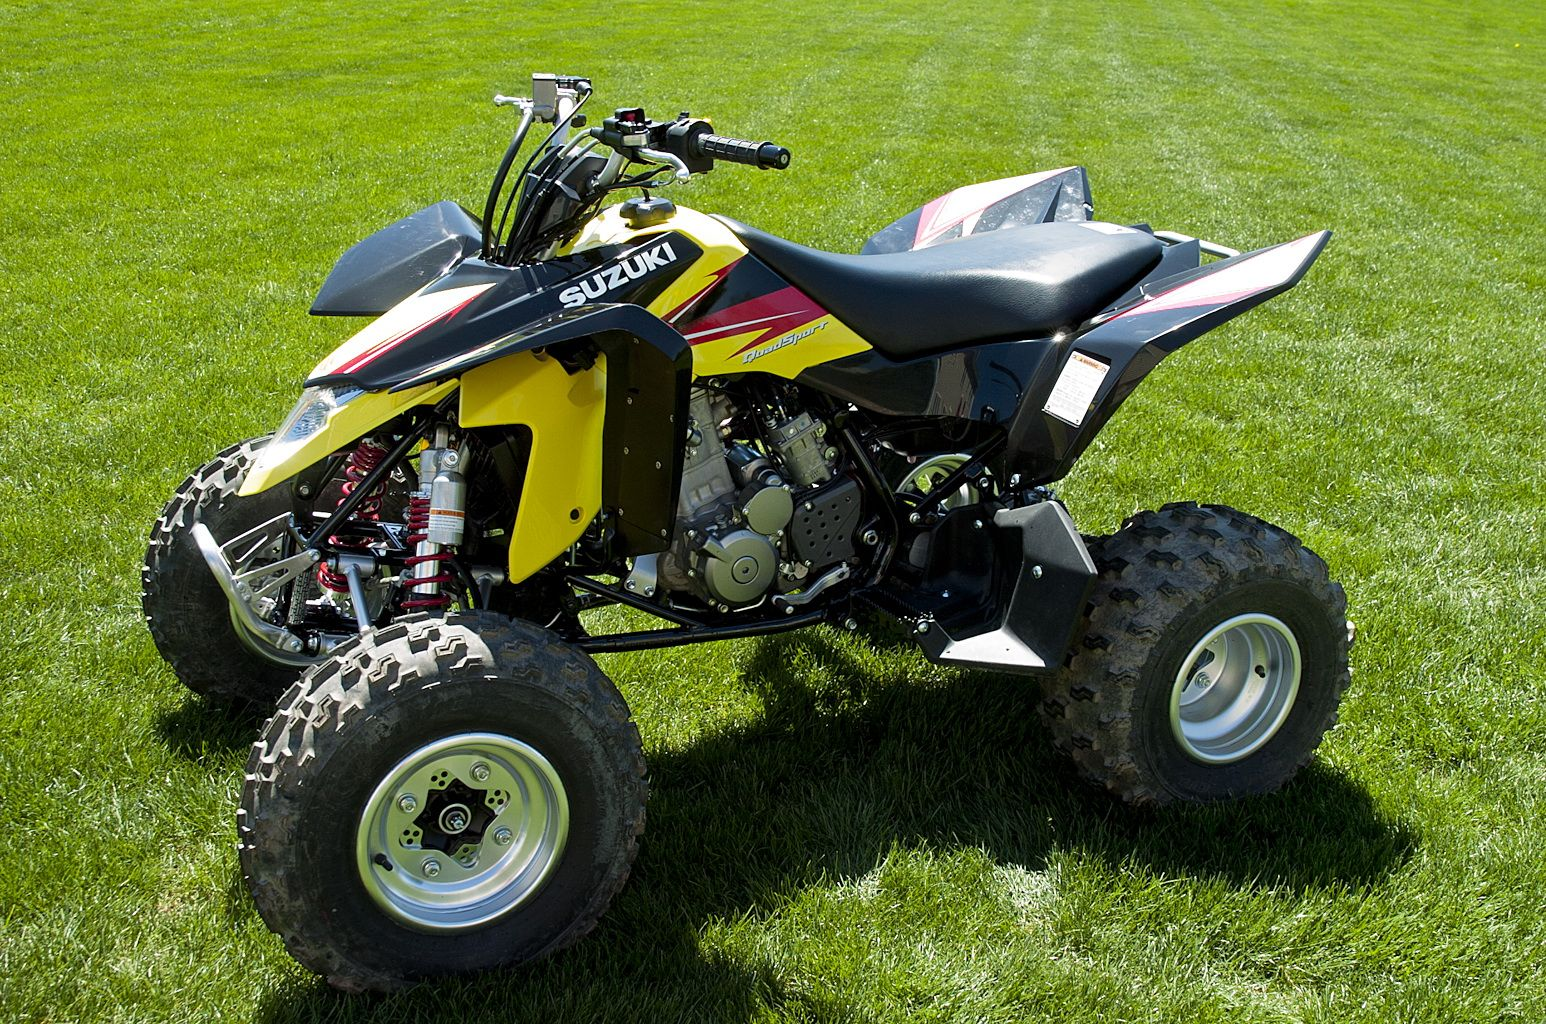 Suzuki quadsport z400 reviews prices and specs autos weblog suzuki - Our New 2013 Suzuki Quadsport Ltz400 What An Improvement In Performance Over Our 2007